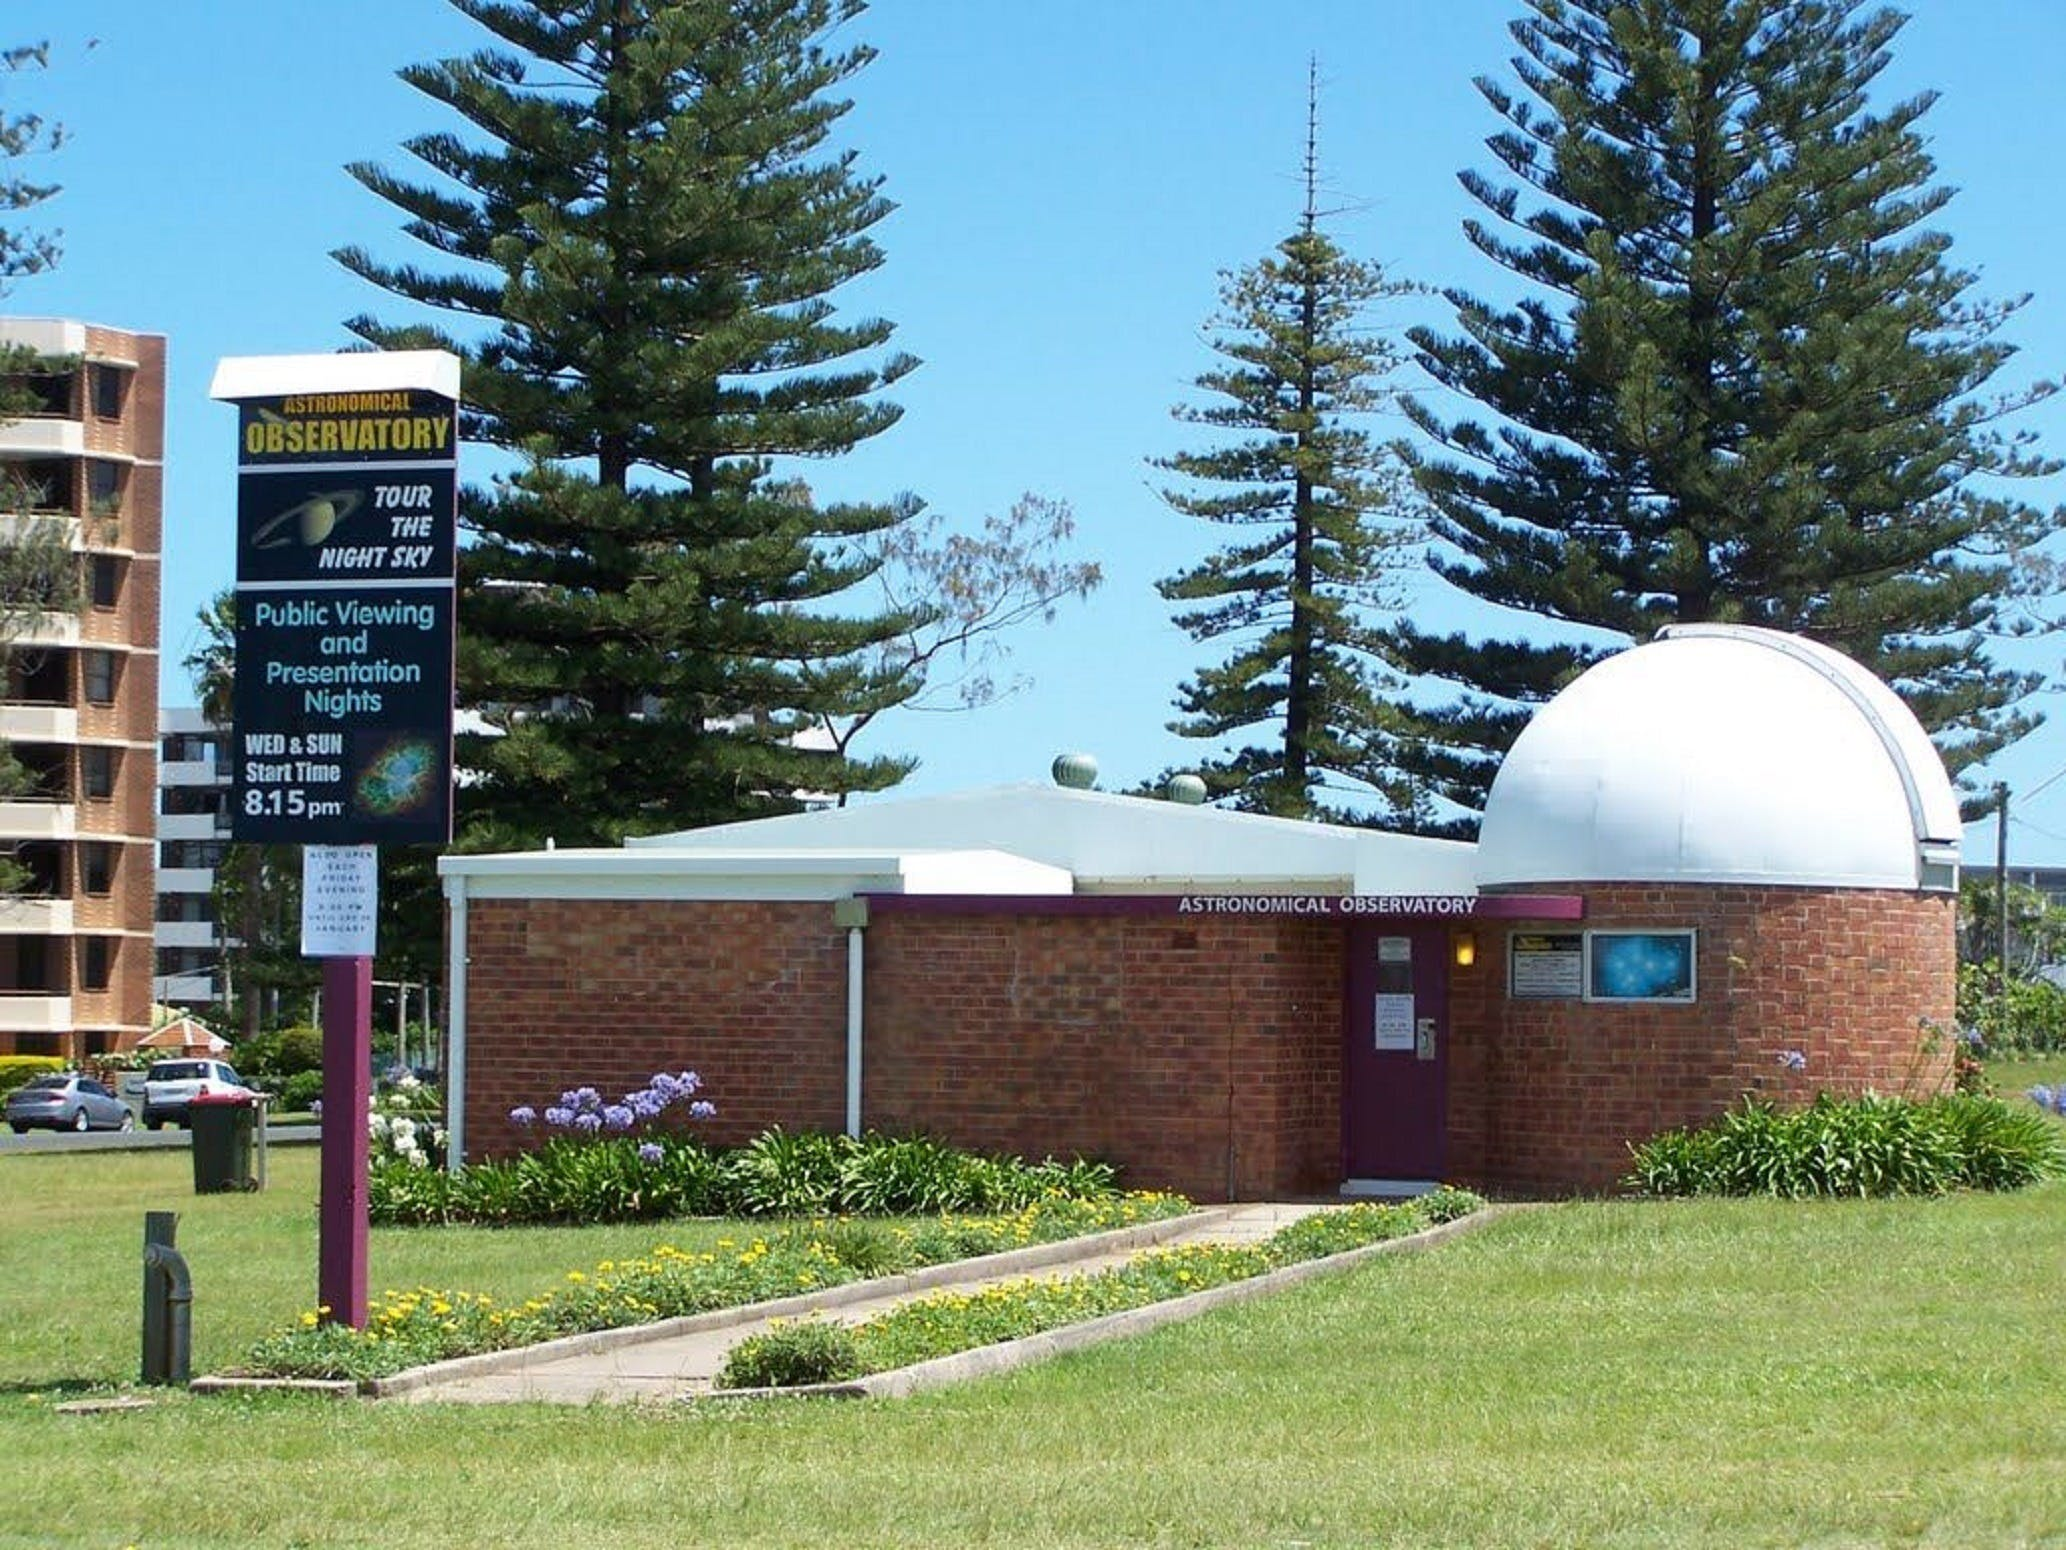 Port Macquarie Astronomical Observatory - Carnarvon Accommodation